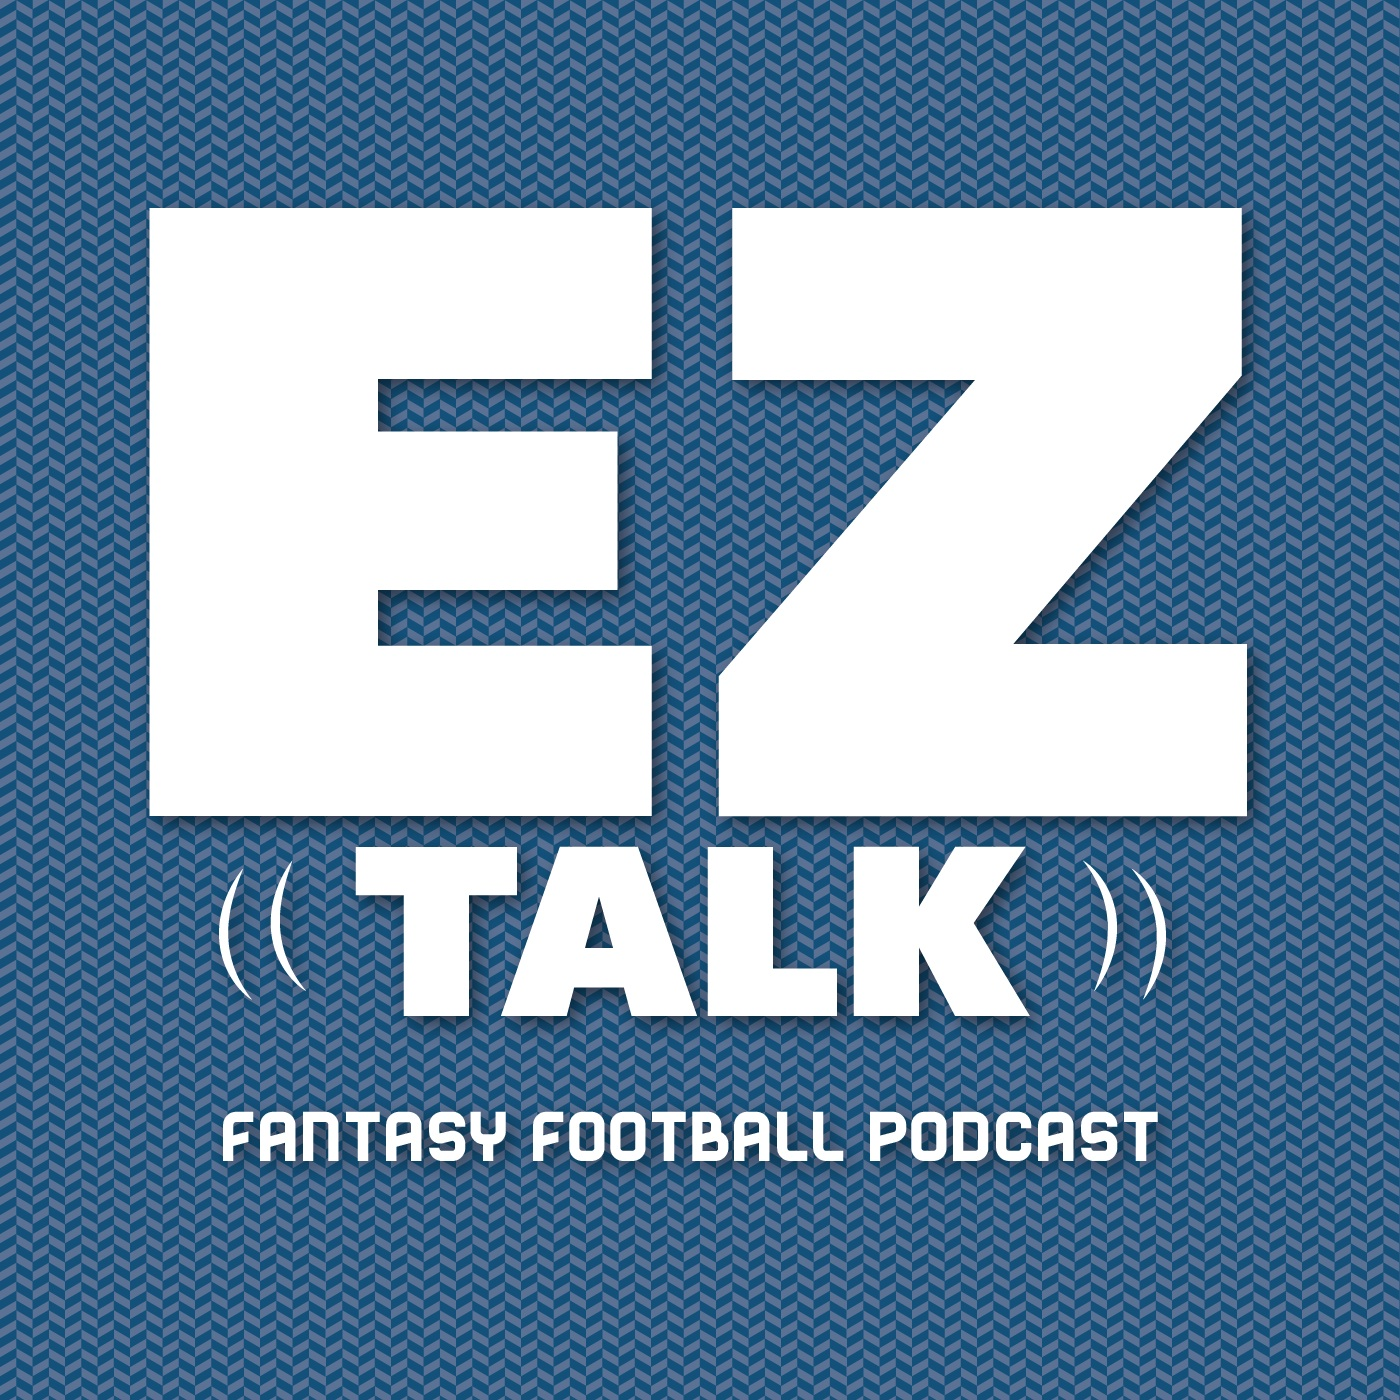 EZ Talk Fantasy Football Podcast